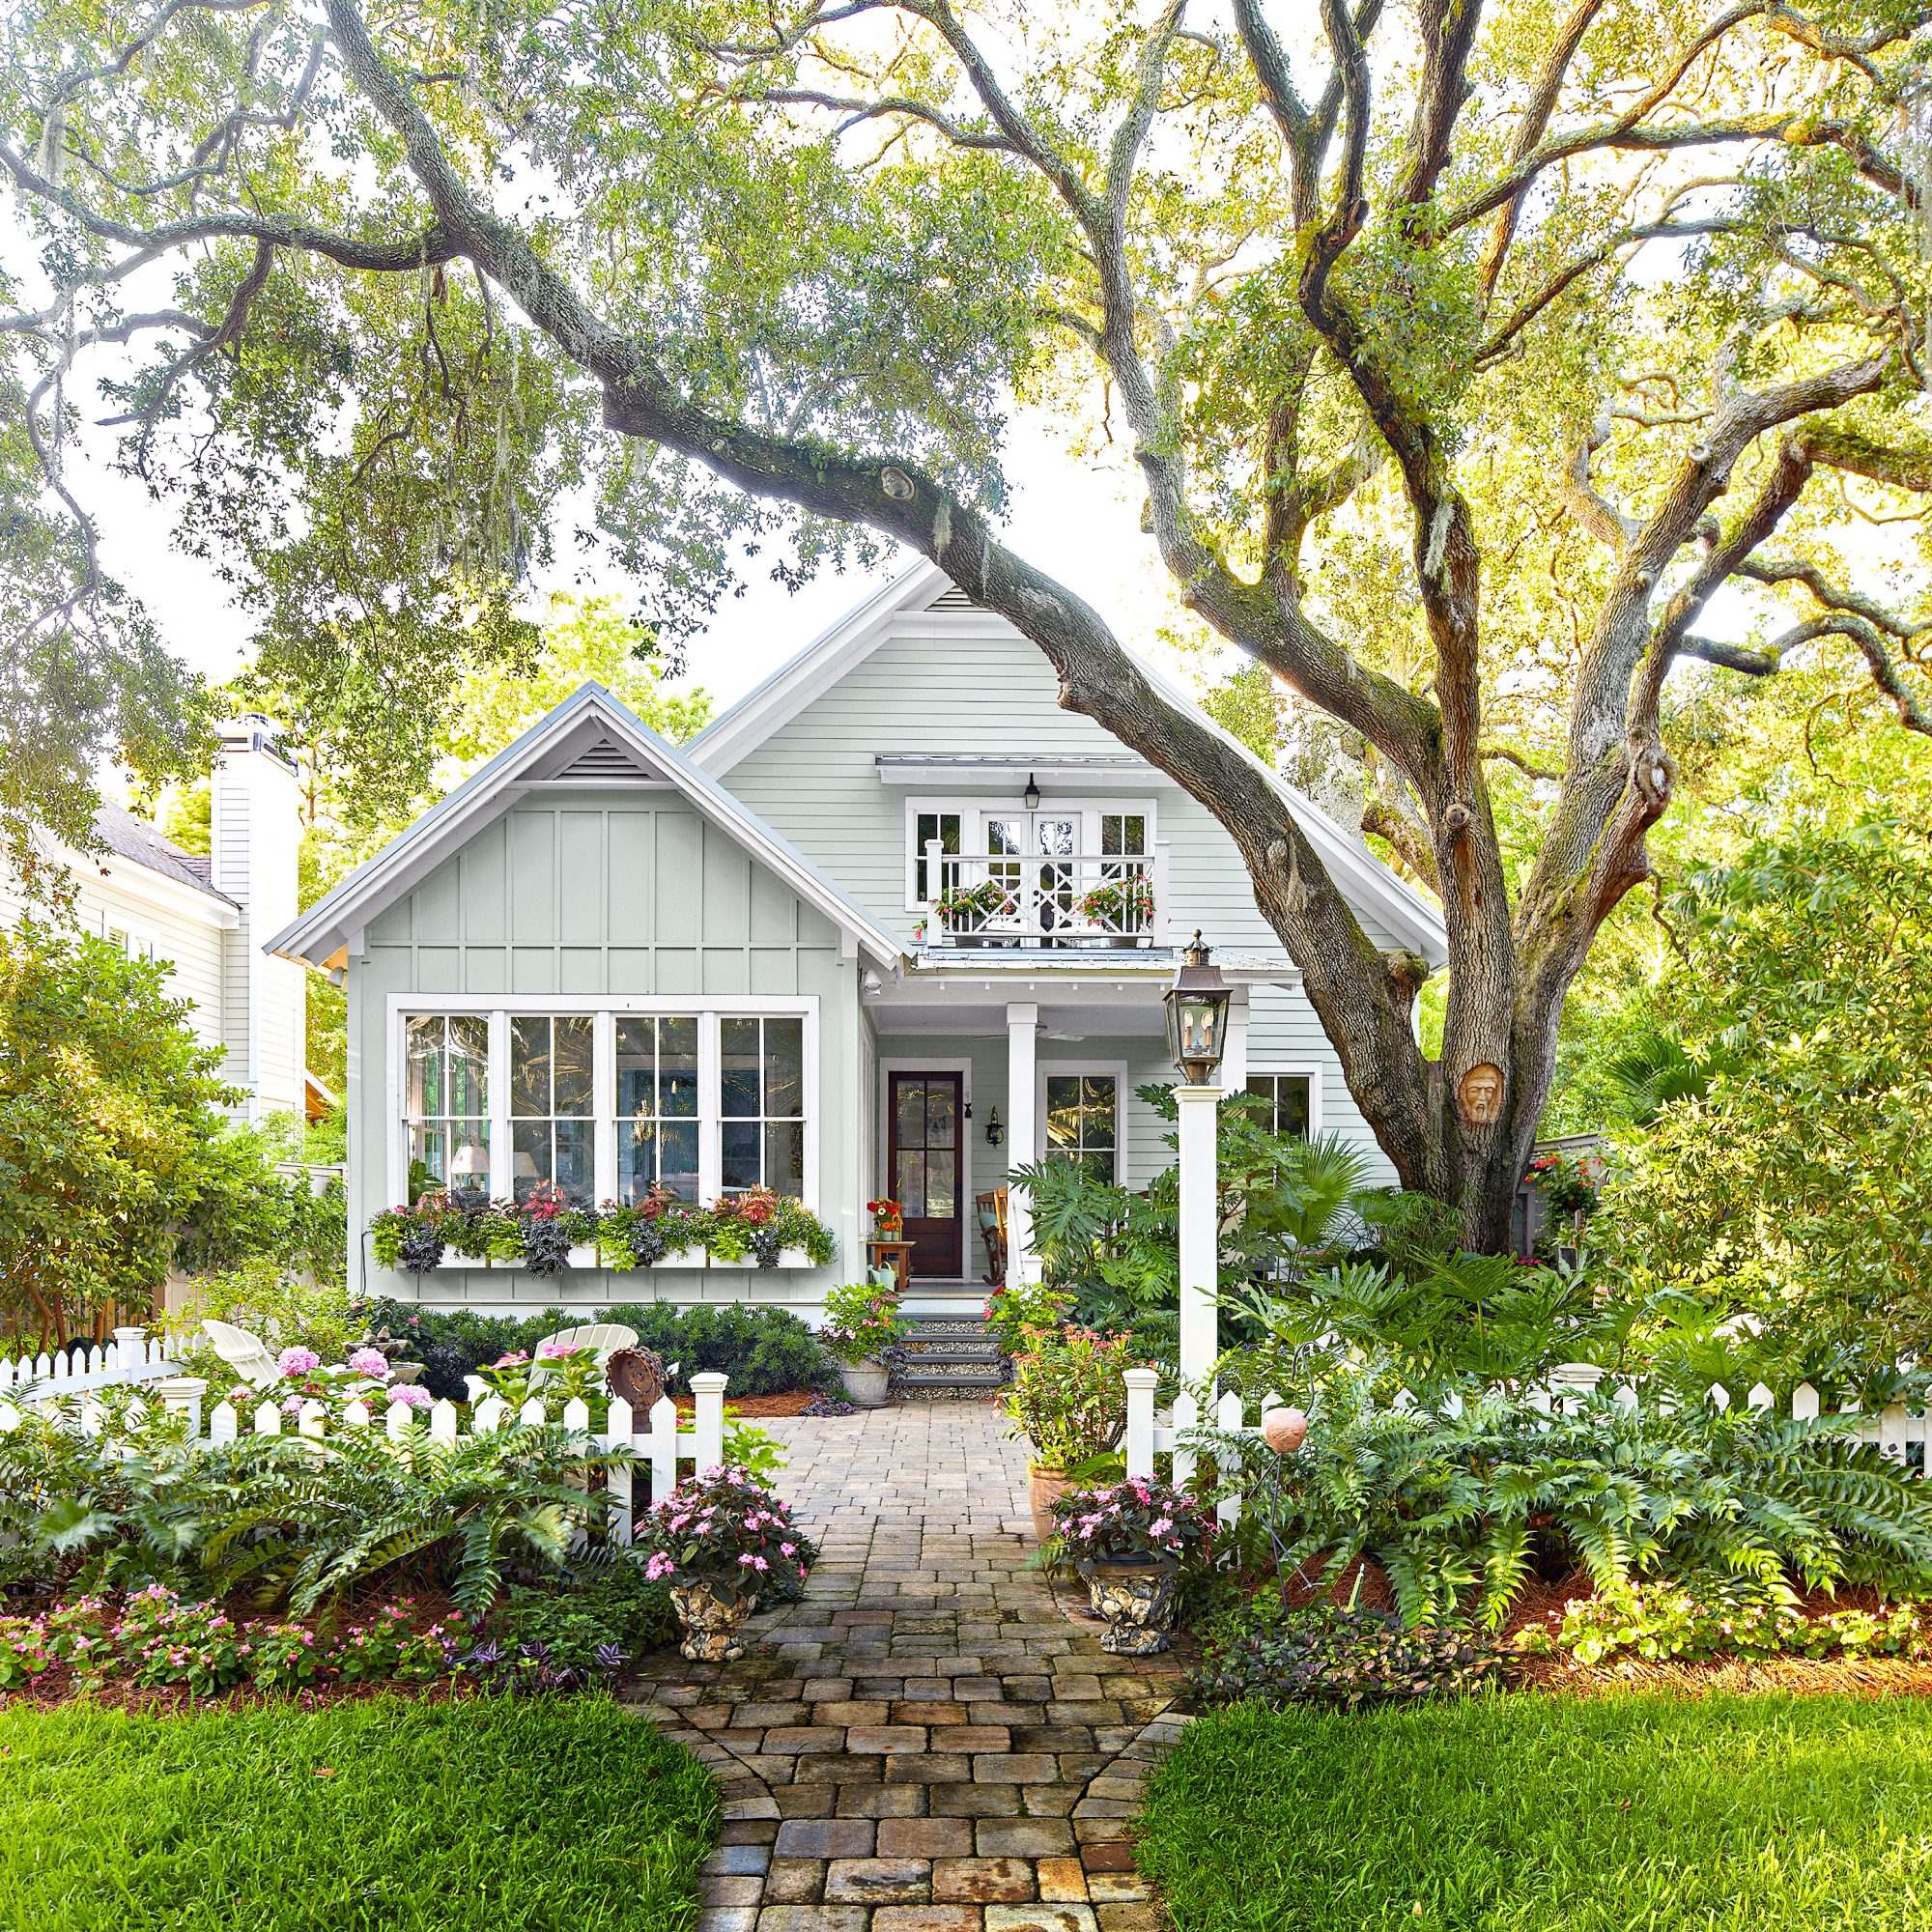 St Simons front yard with patio and old live oak tree